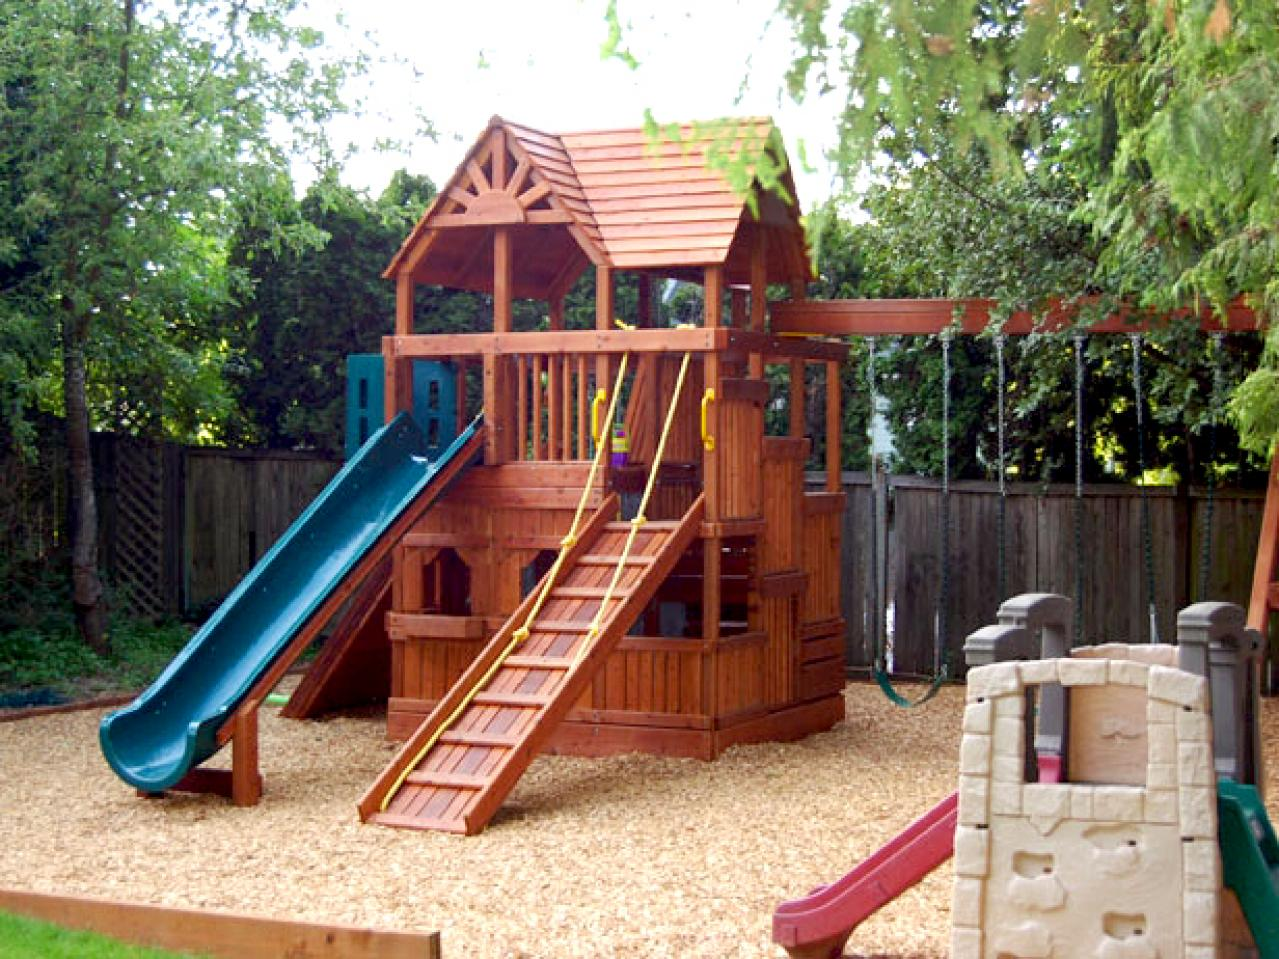 Places To Play DIY - Backyard playground equipment